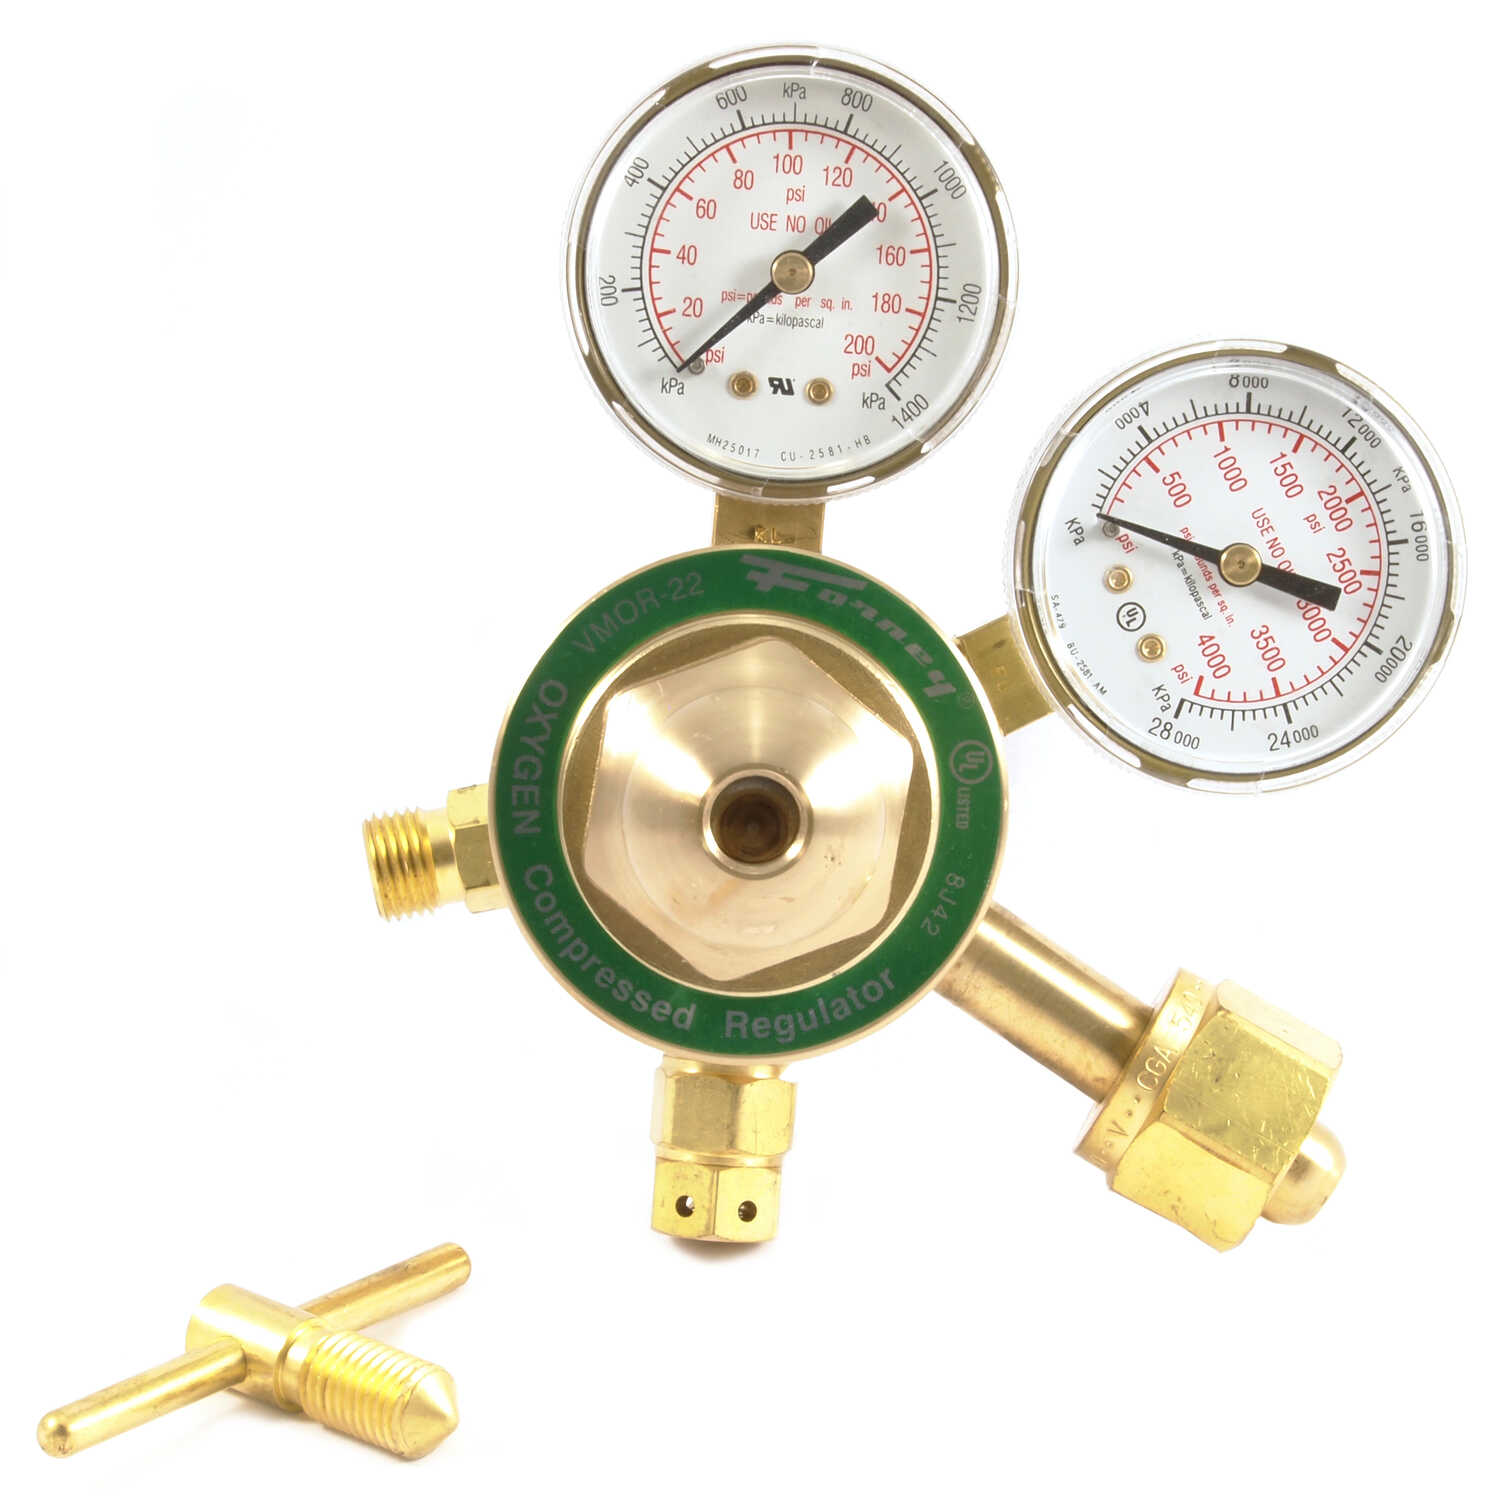 Forney  7.75 in. L x 8.625 in. W Welding Oxygen Regulator  1 pc.